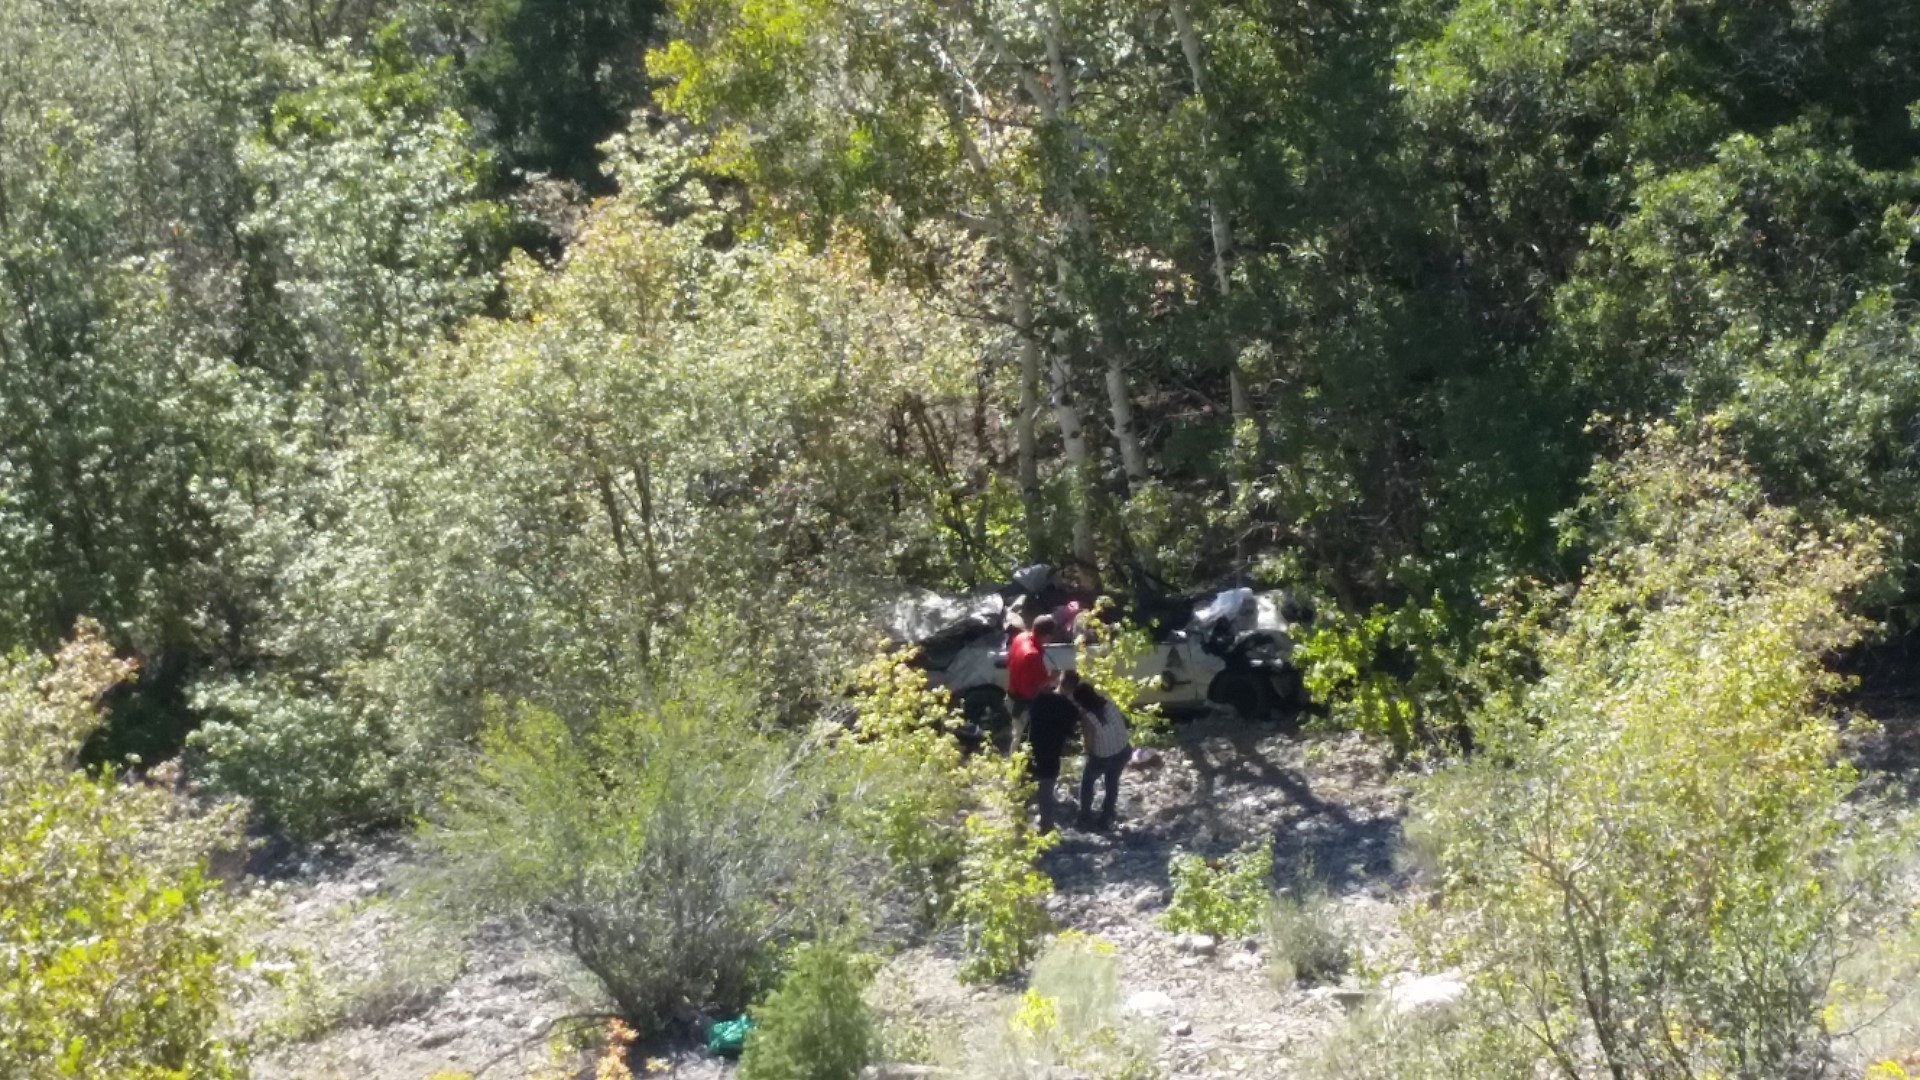 Car that crashed several hundred feet down a mountainside in American Fork Canyon.  The driver, Heather Blackwelder, remained trapped inside for two days until two people out taking photographs heard her cries for help Thursday. American Fork Canyon, Utah, Sept. 10, 2015 | Photo courtesy of Utah County Sheriff's Office, St. George News